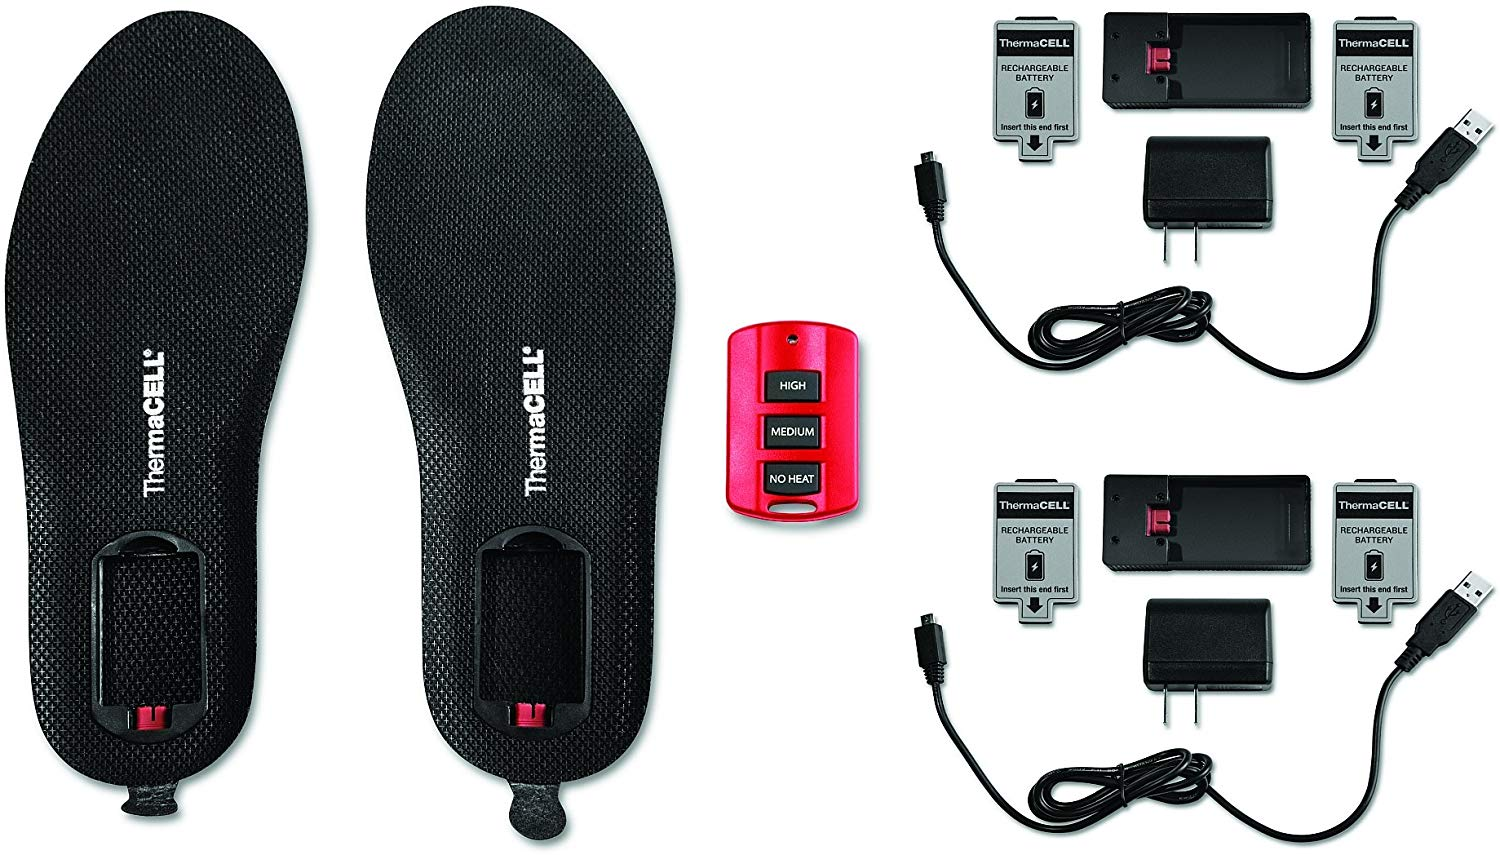 Thermacell Proflex Remote Controlled Flexible Heated Shoe Insole with Rechargeable Battery and Additional Battery